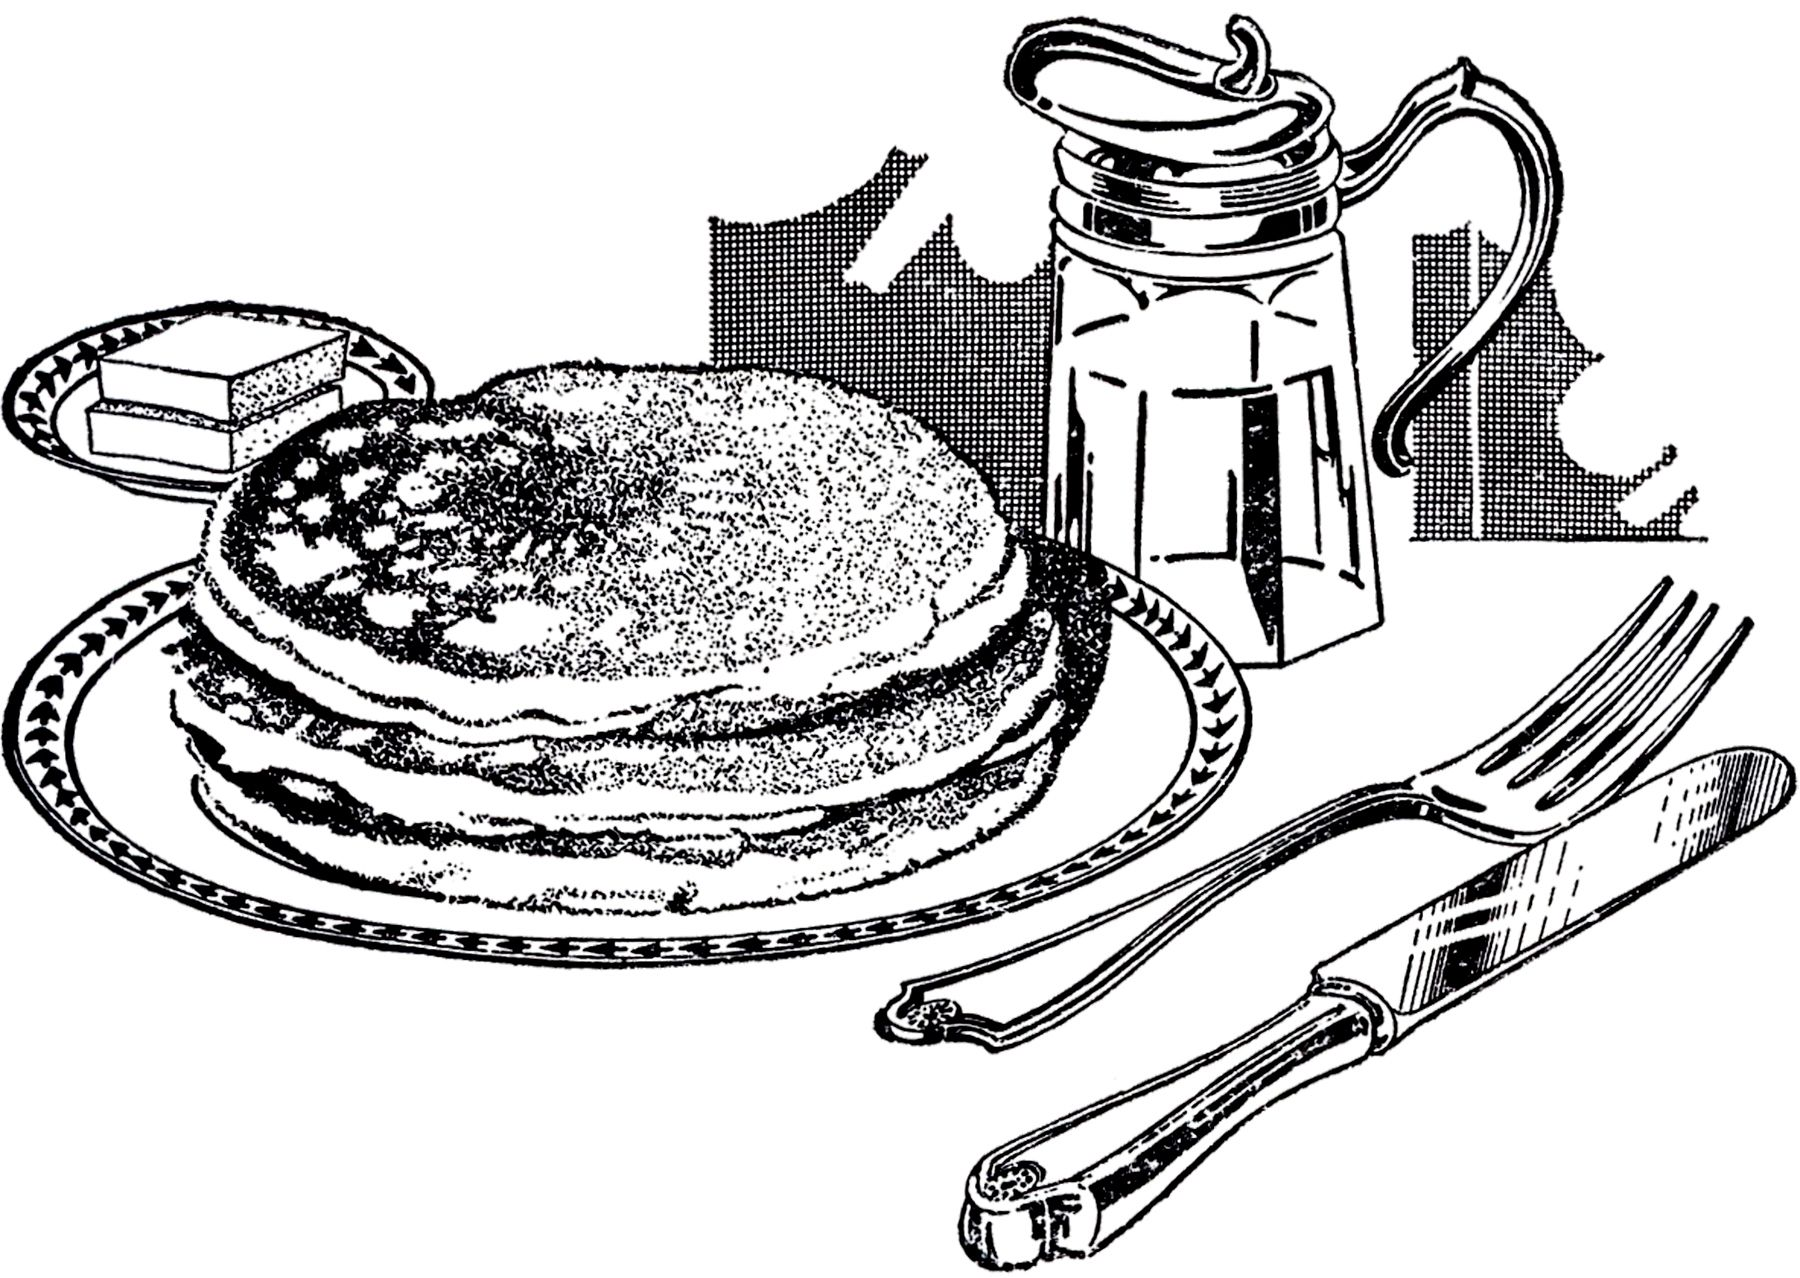 small resolution of thegraphicsfairy com wp content uploads 2015 04 vintage pancake breakfast image